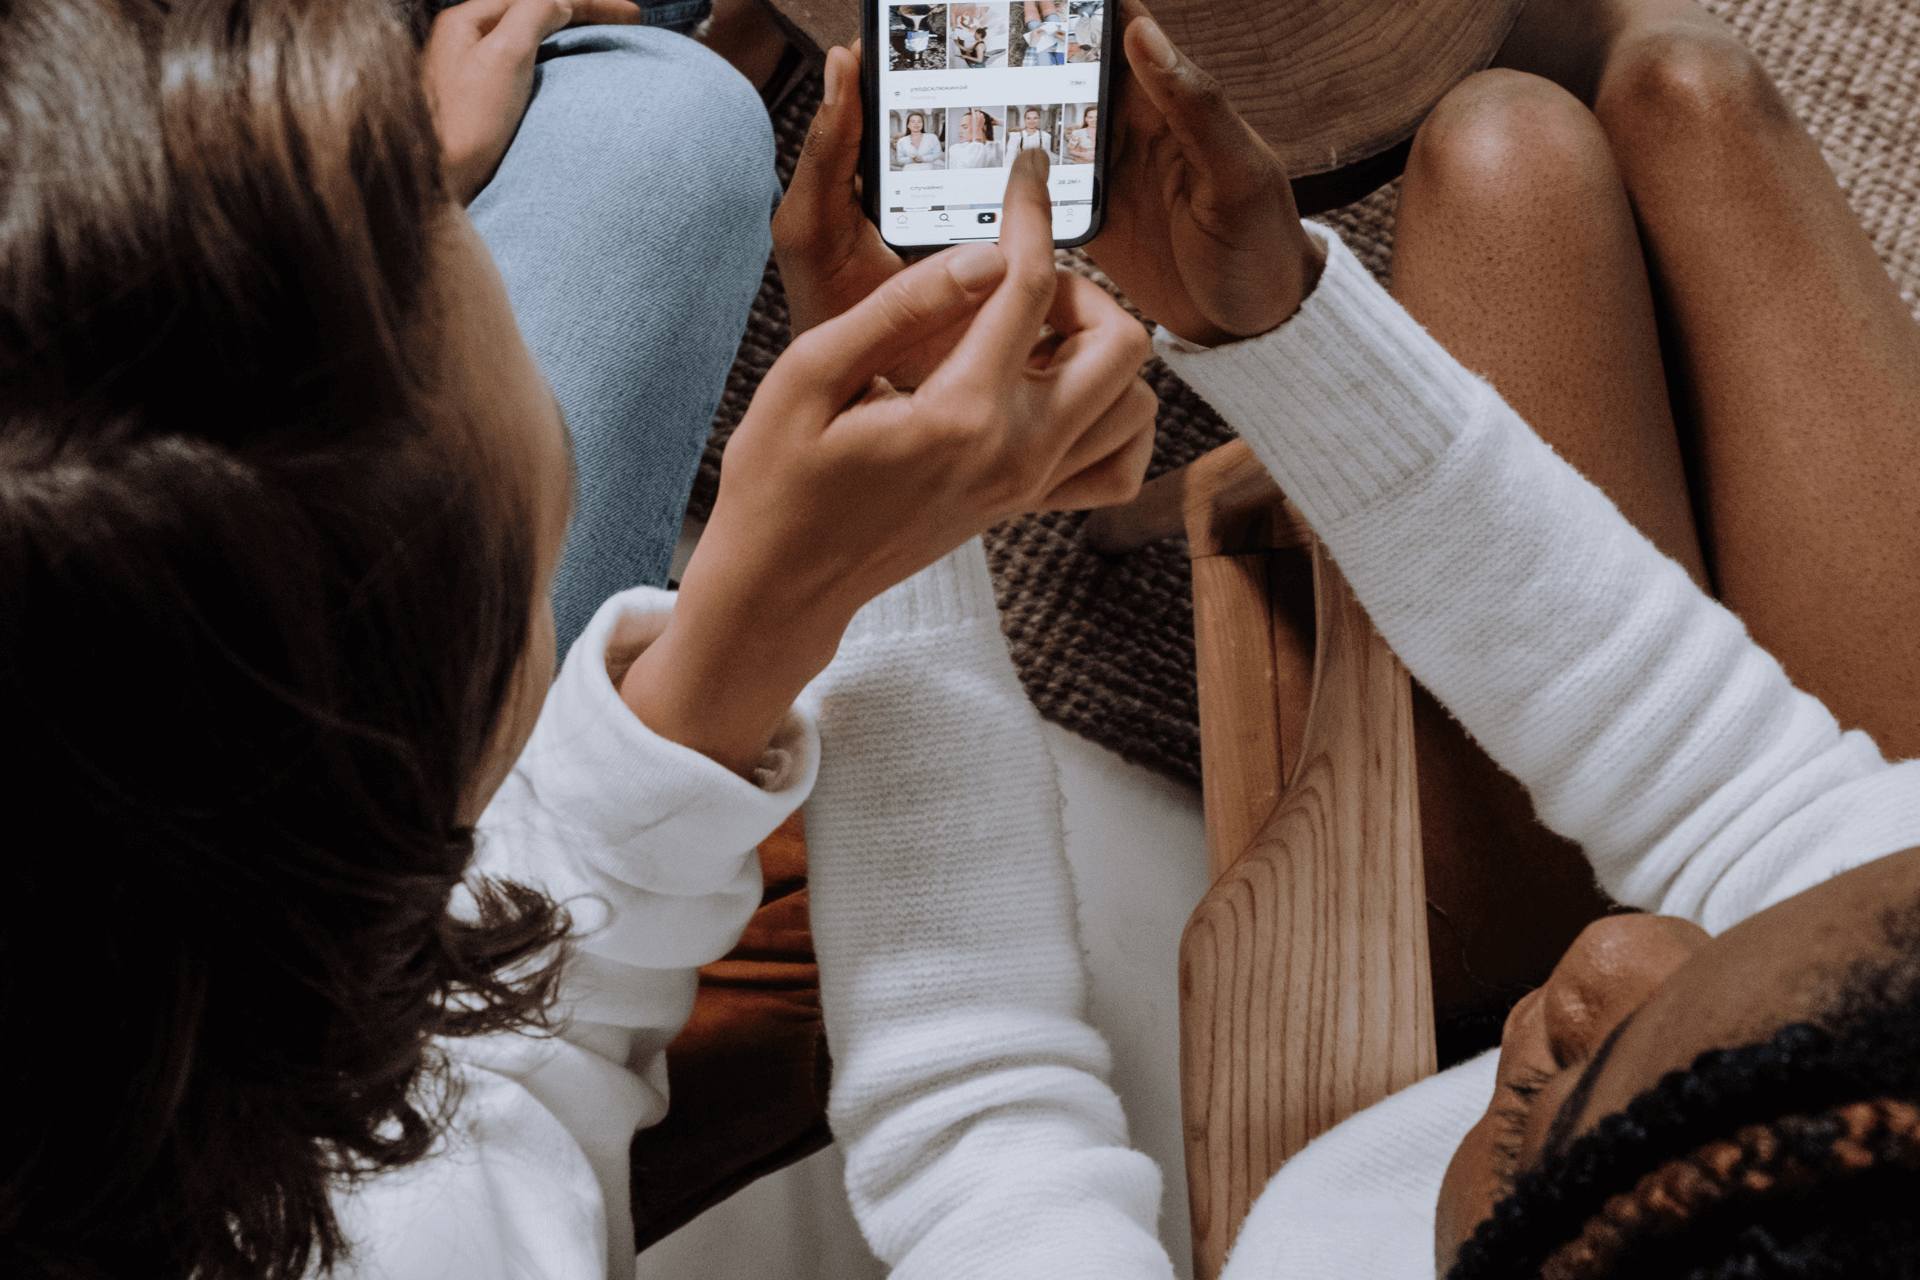 Two women look at TikTok influencers on their phone